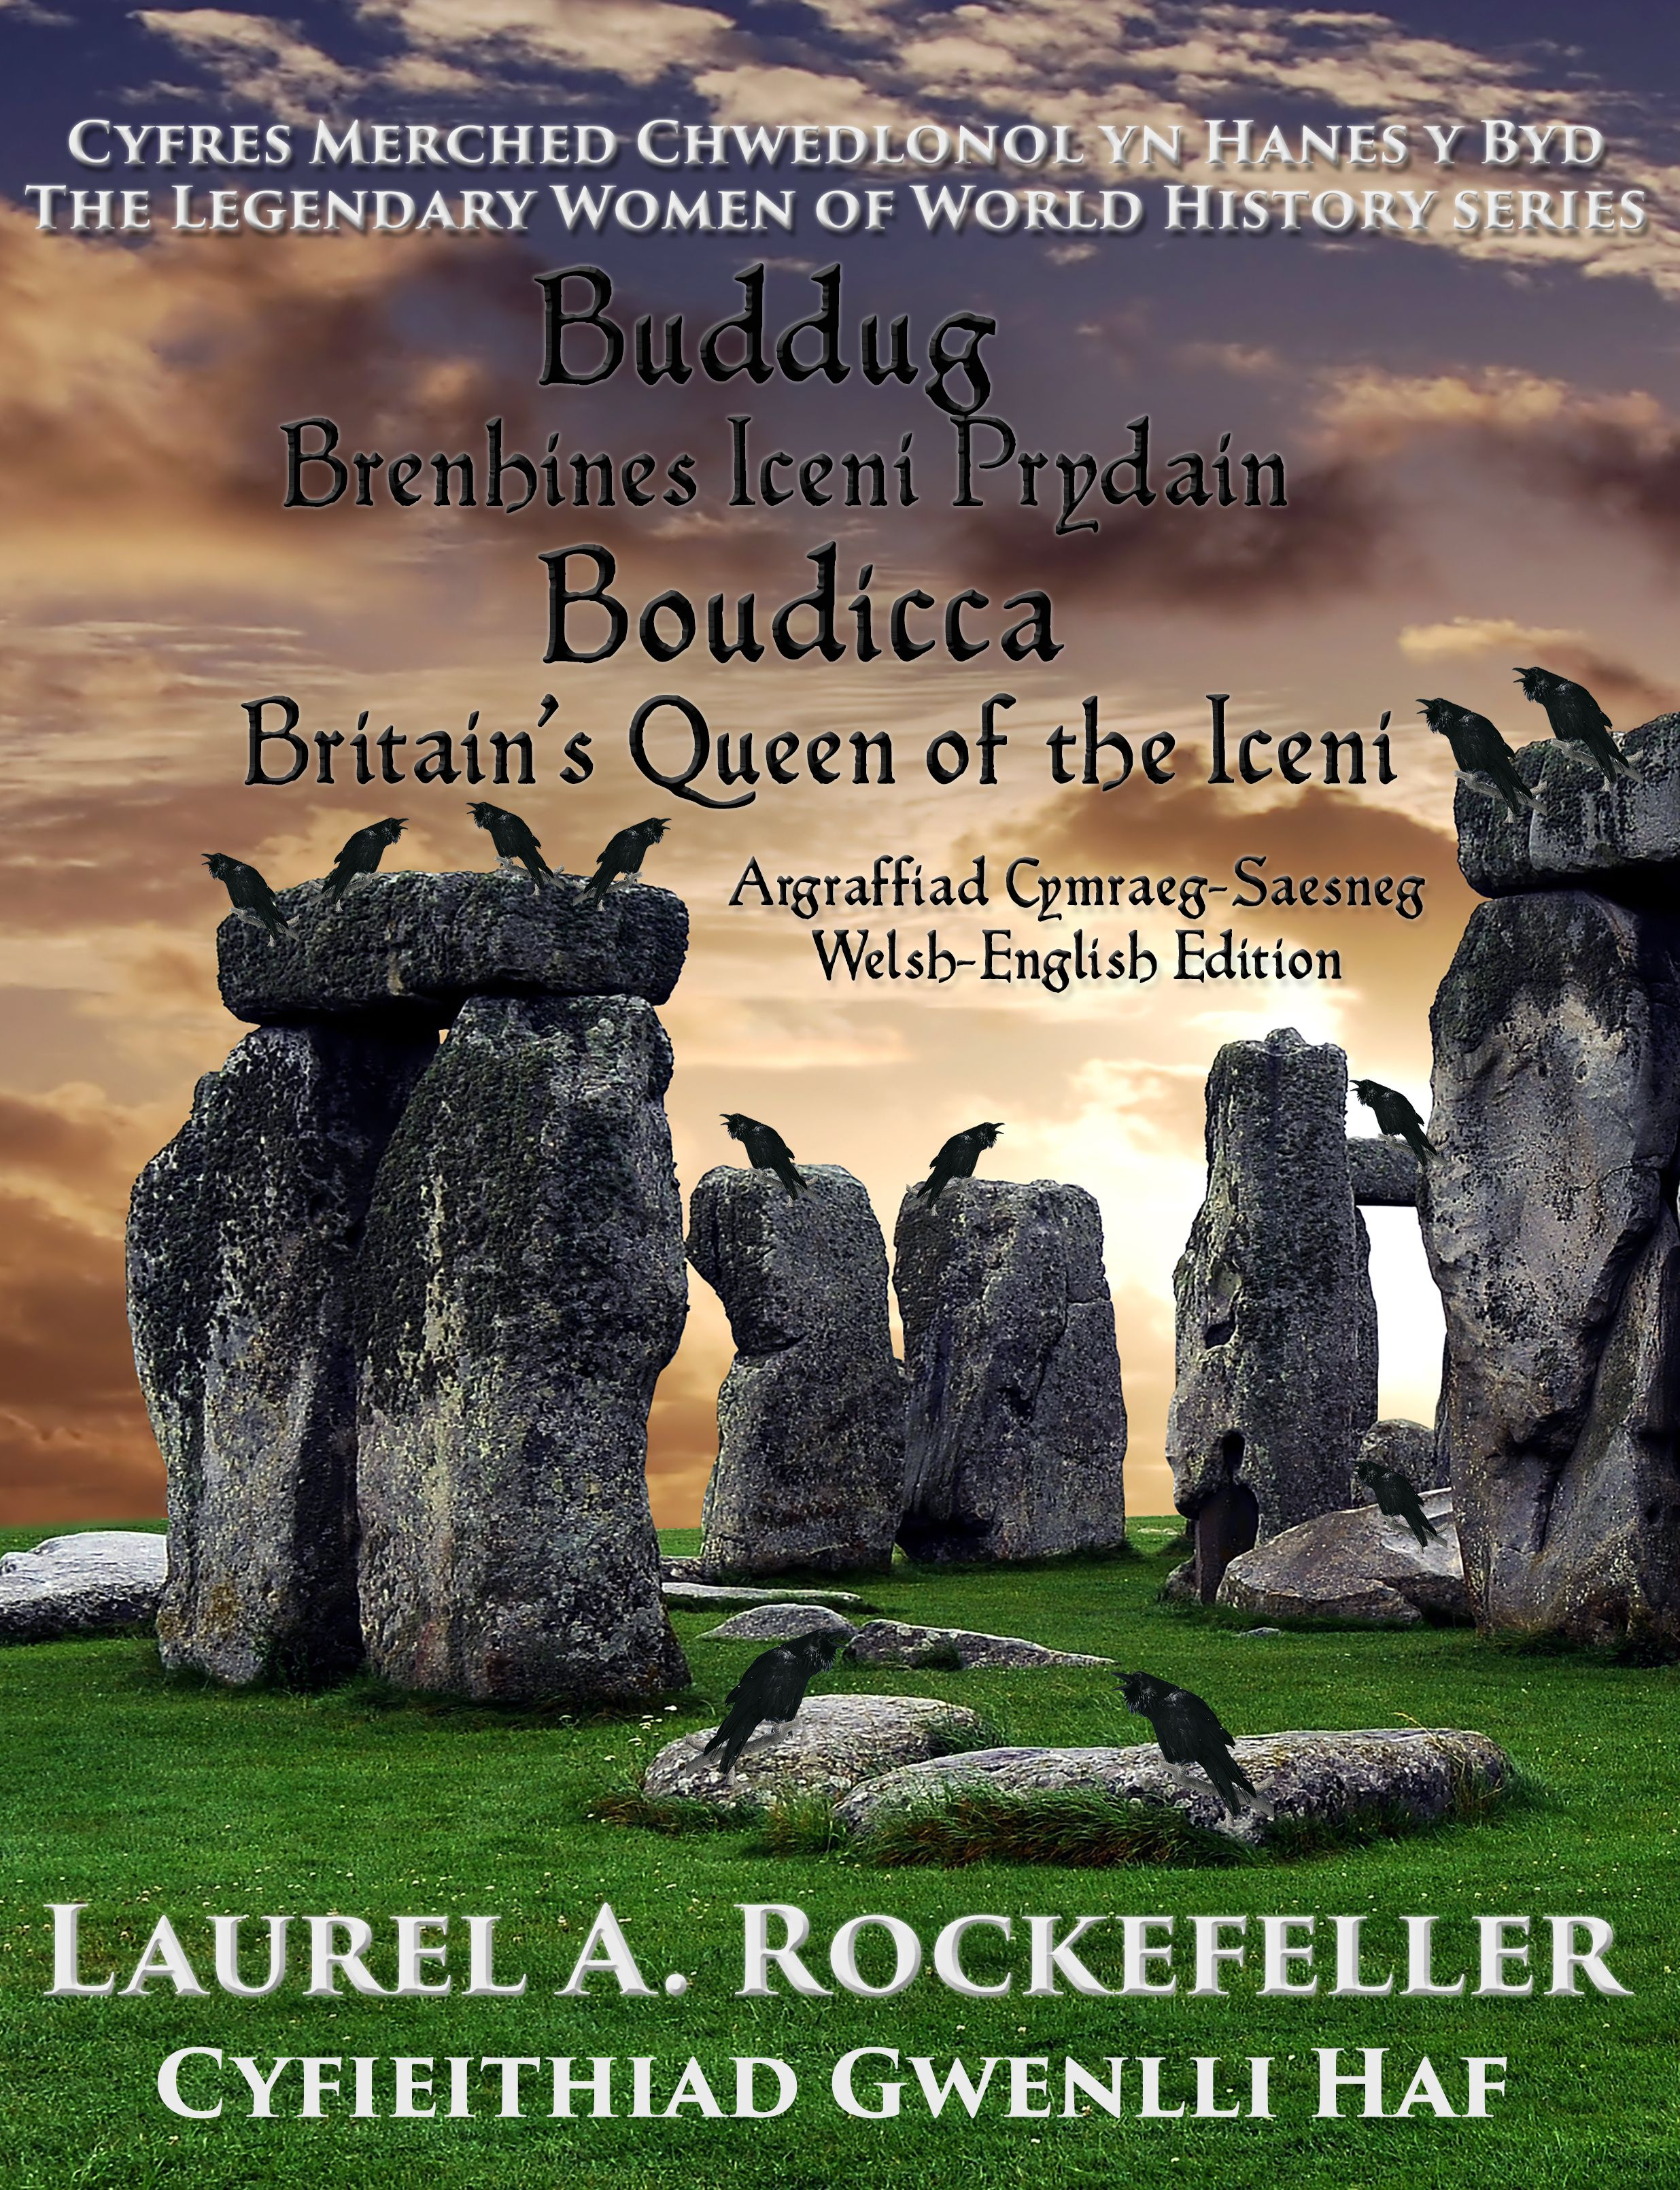 Welsh-English edition of Boudicca: Britain's Queen of the